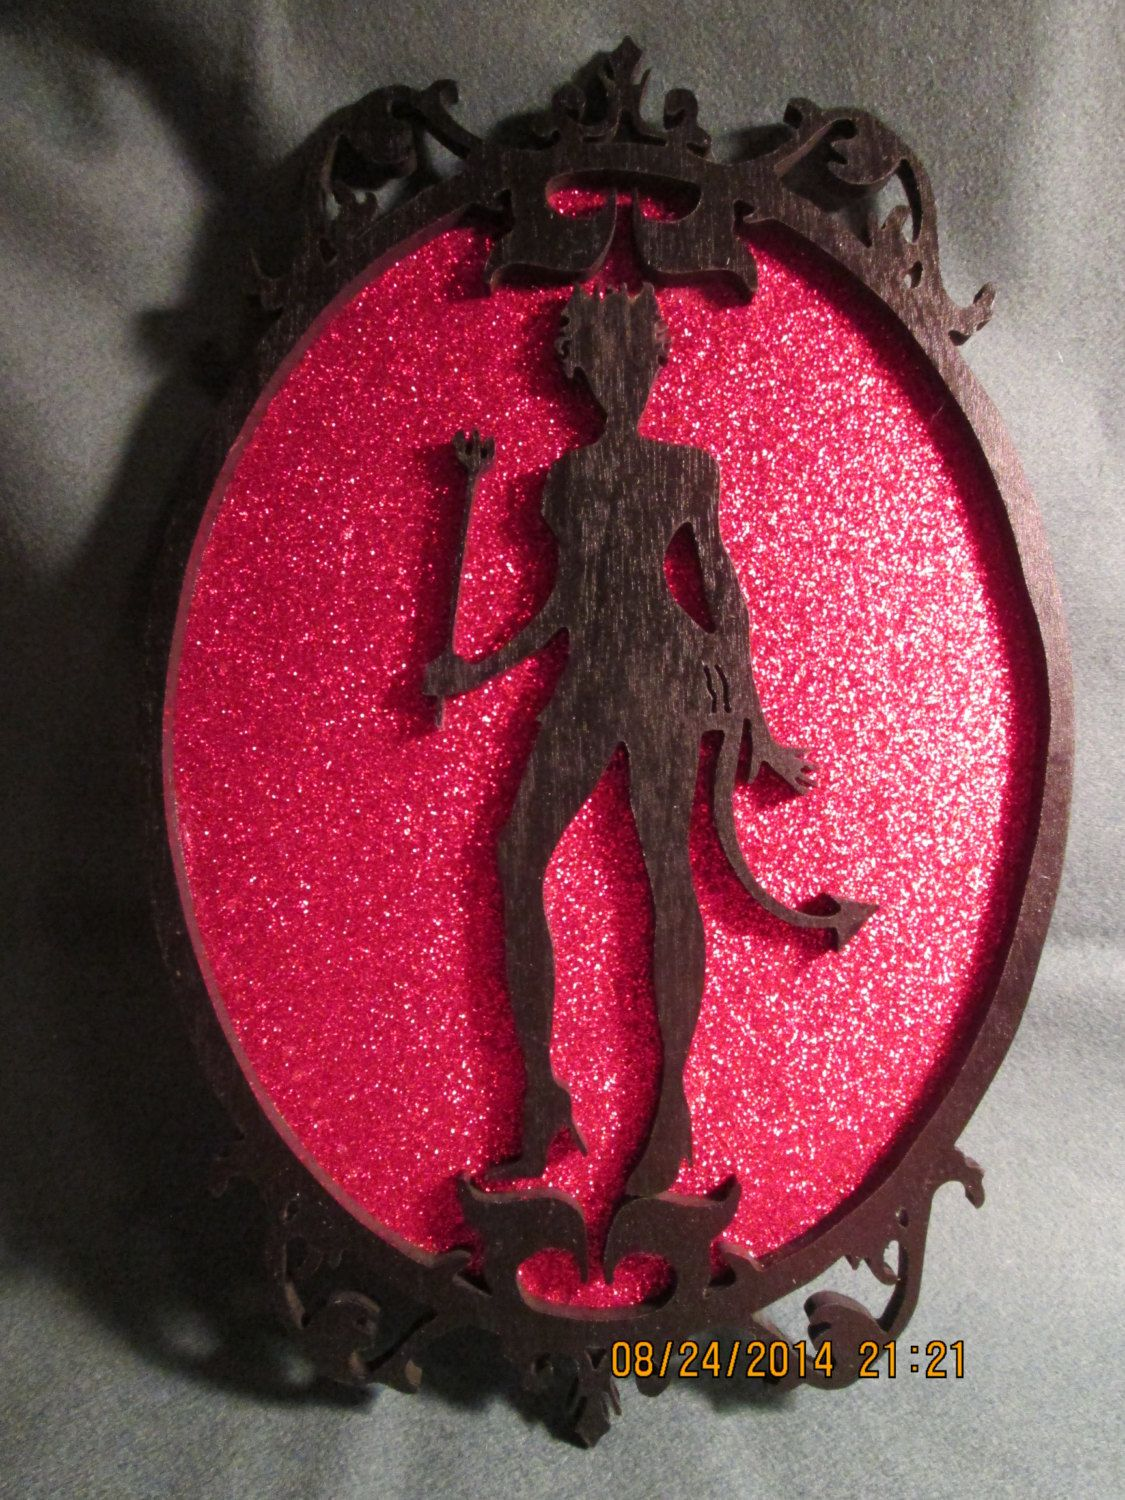 Silhouette She-Devil Portrait Wall Plaque Hanging Decoration (plaque holder not included) by PXWoodNJoys on Etsy